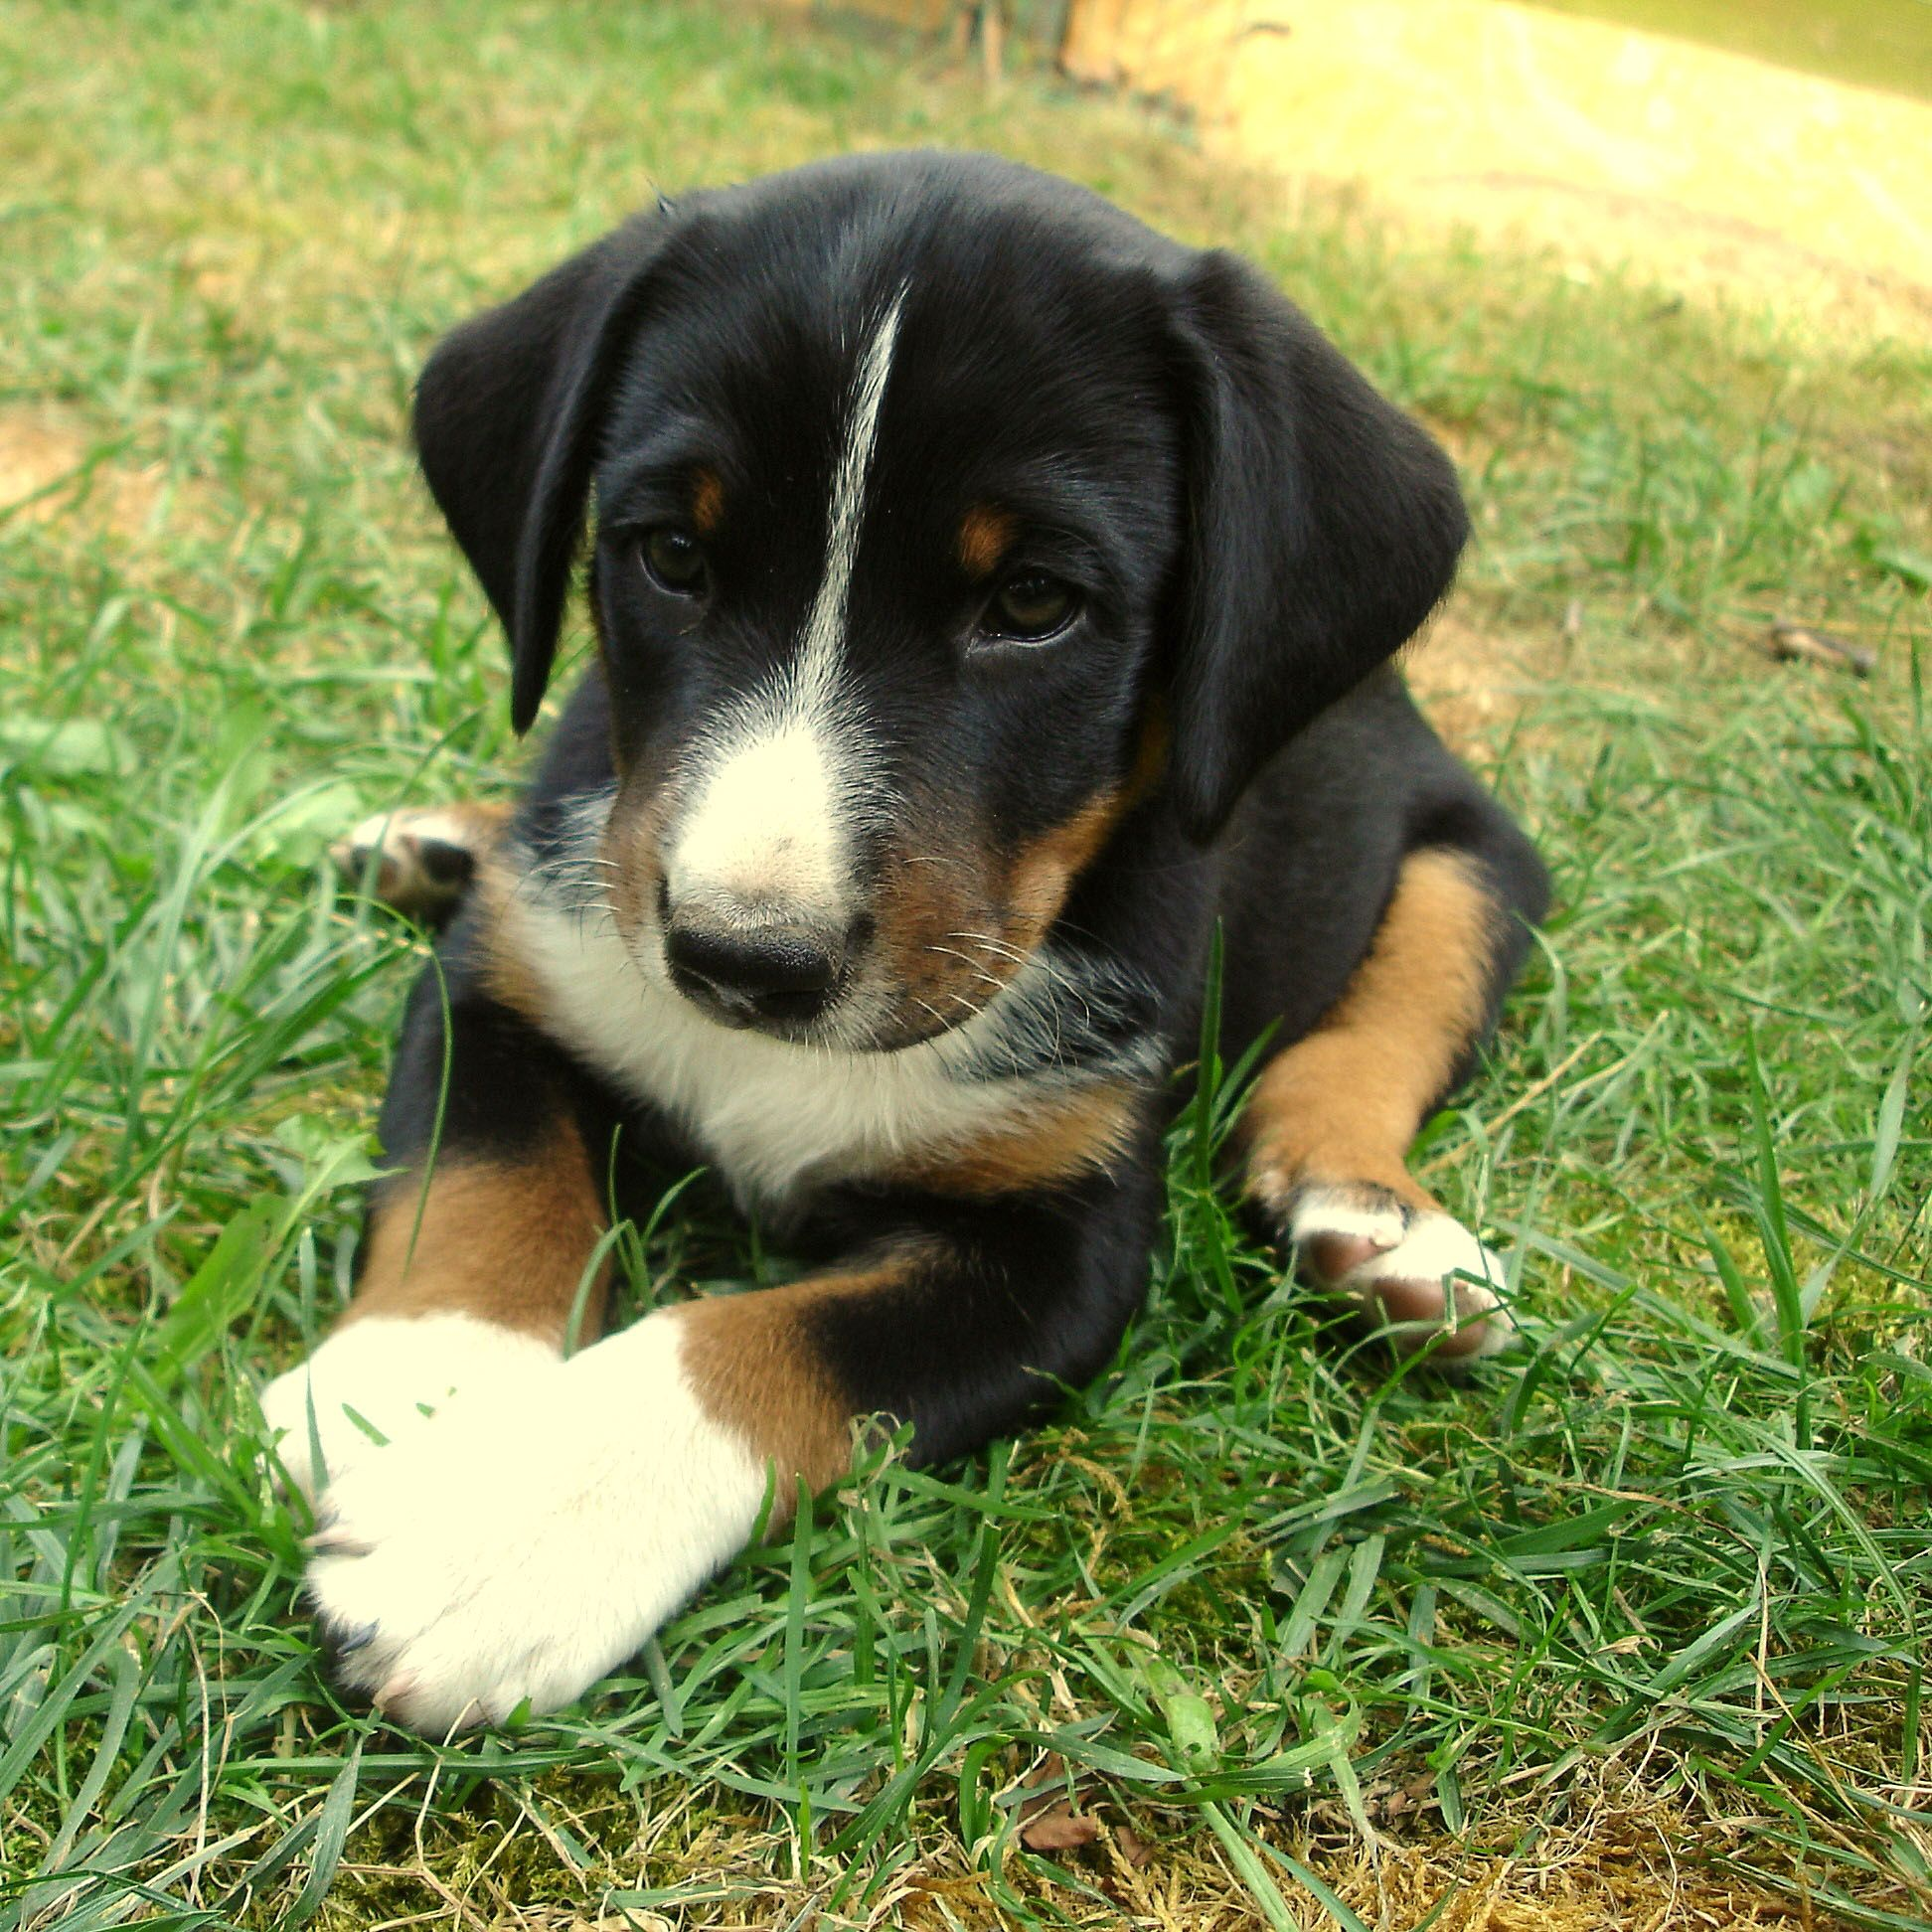 Charming Bernesemountaindog Beautiful Dogs Puppies Dog Pictures